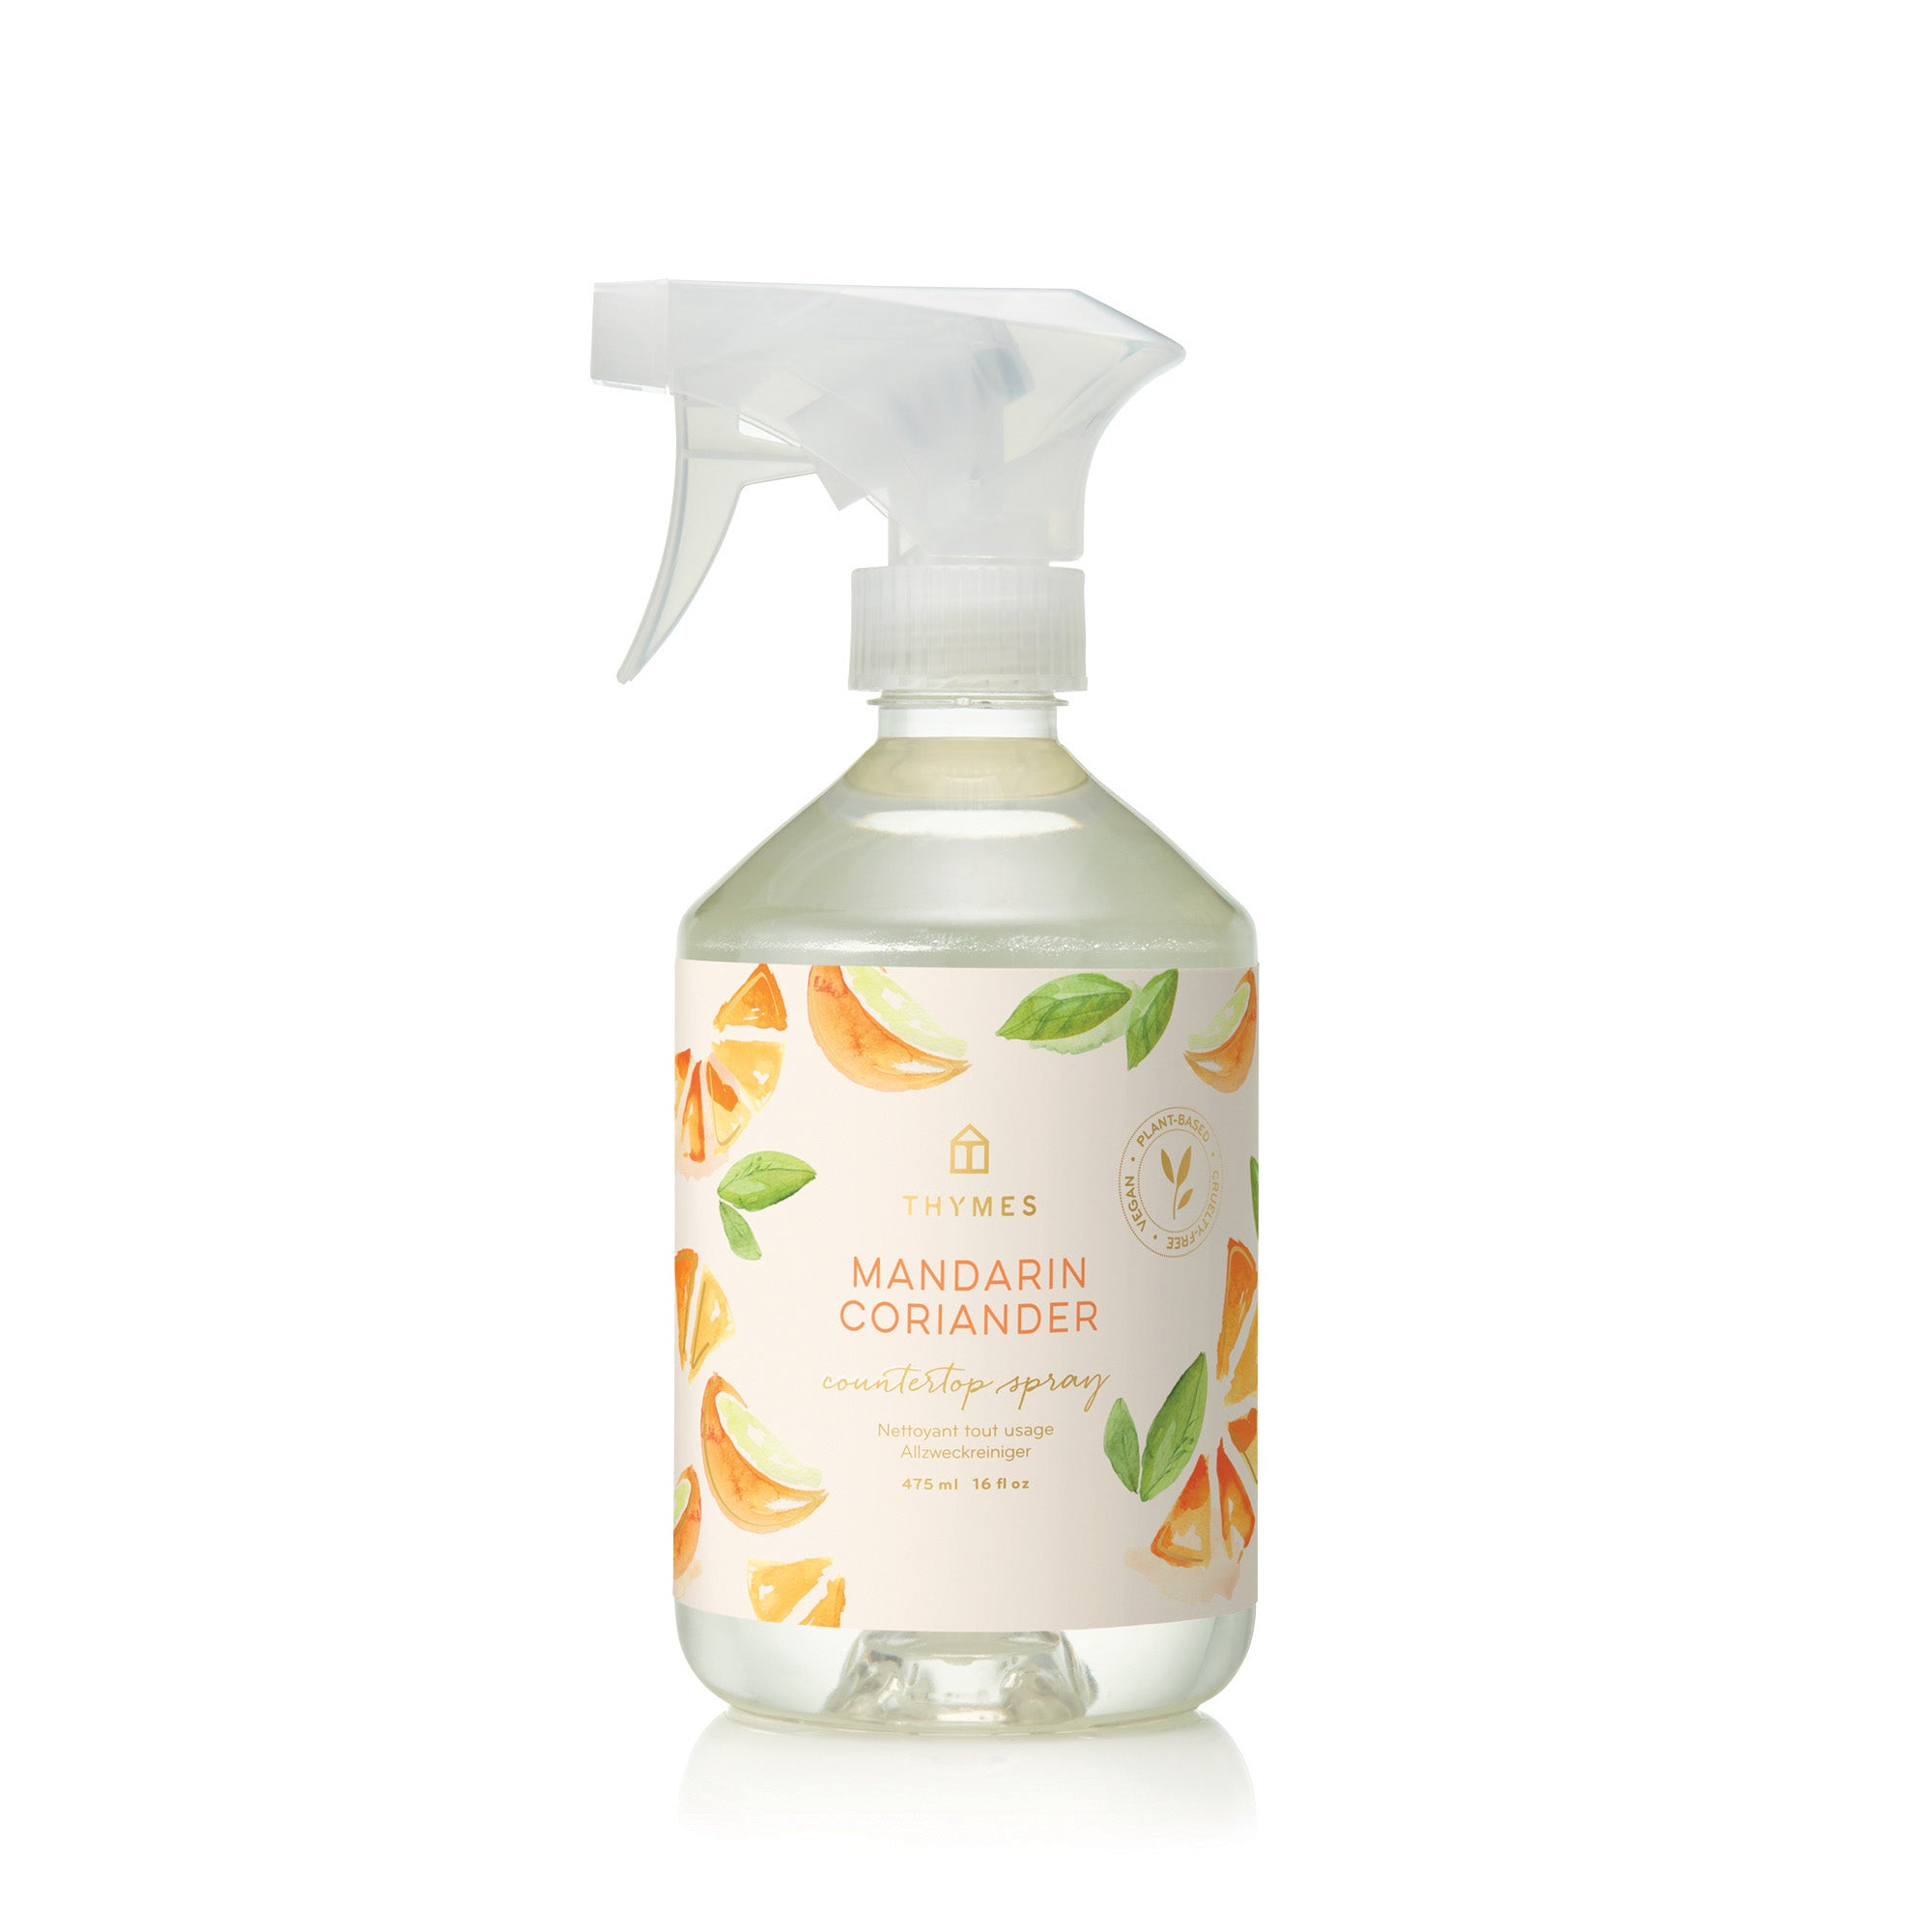 MANDARIN CORIANDER POURPOSE CLEANER